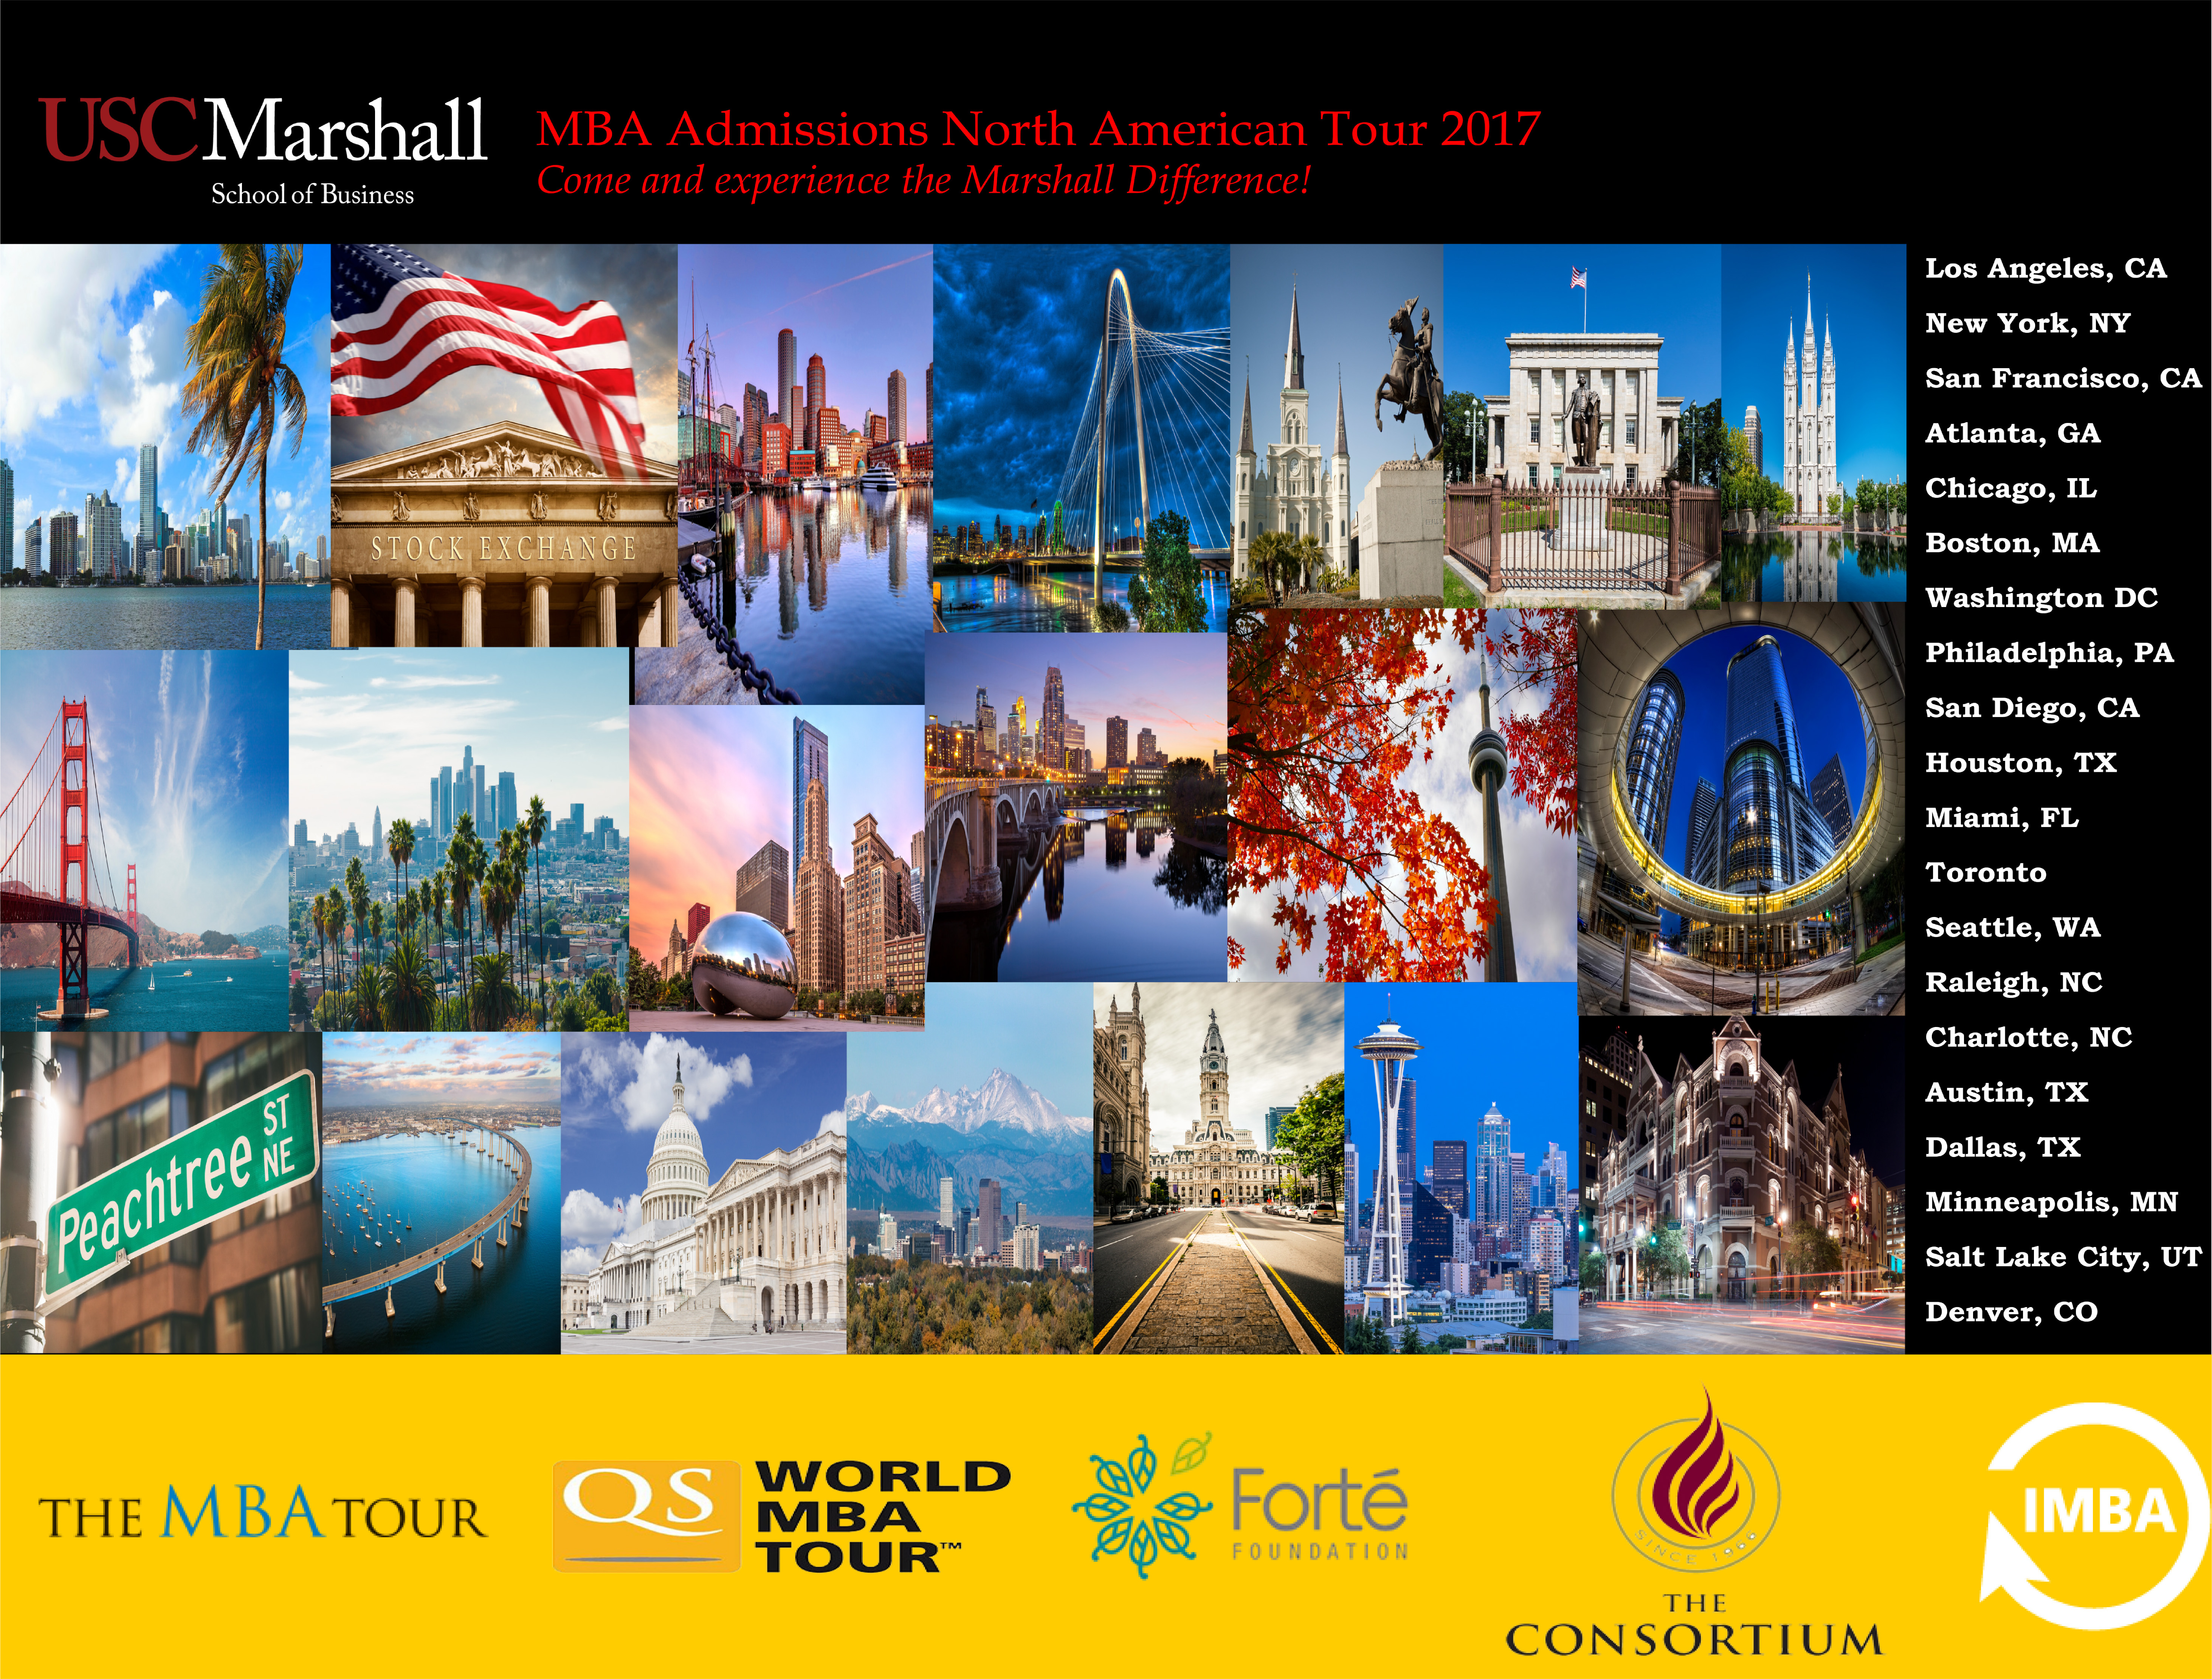 MBA admissions tour cities